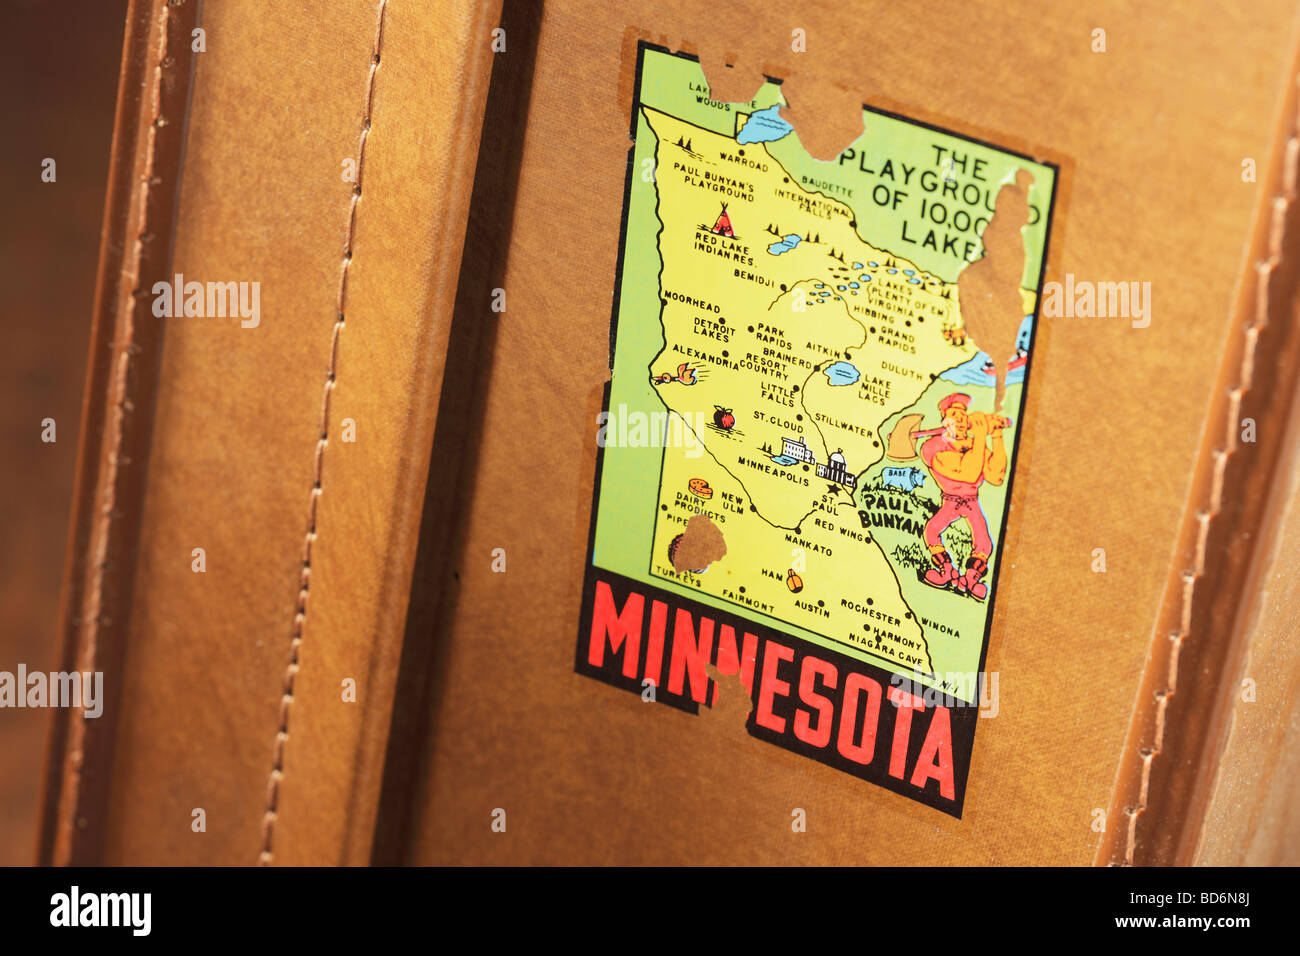 Old suitcase with Minnesota sticker - Stock Image